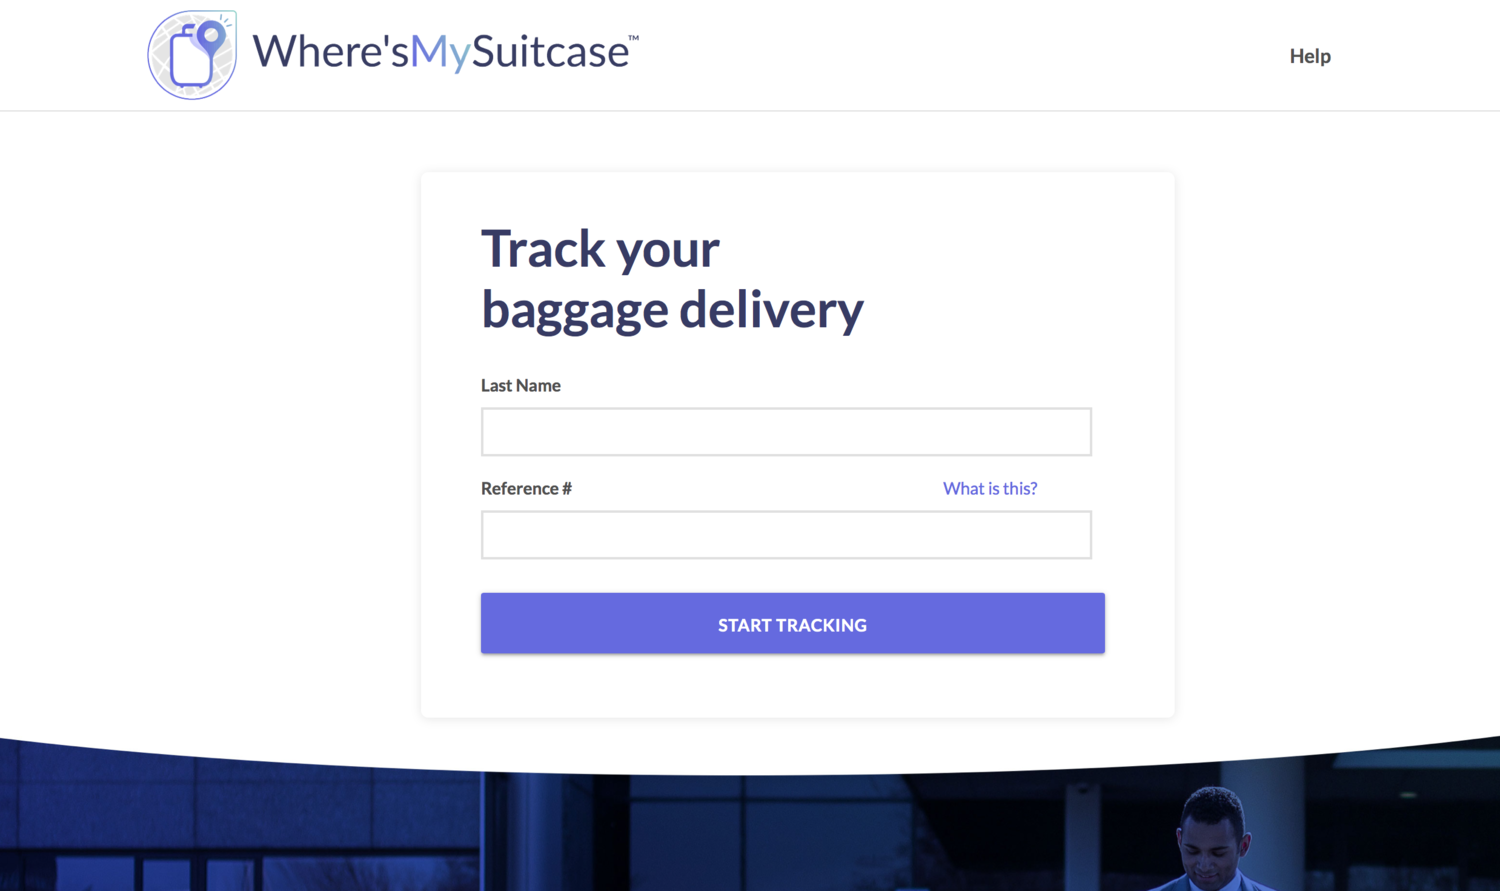 Where's My Suitcase - Bags, Inc. required a re-vamped web experience to better service their airline partners. We designed a user experience optimized for serving their frustrated site visitors in need of baggage recovery.